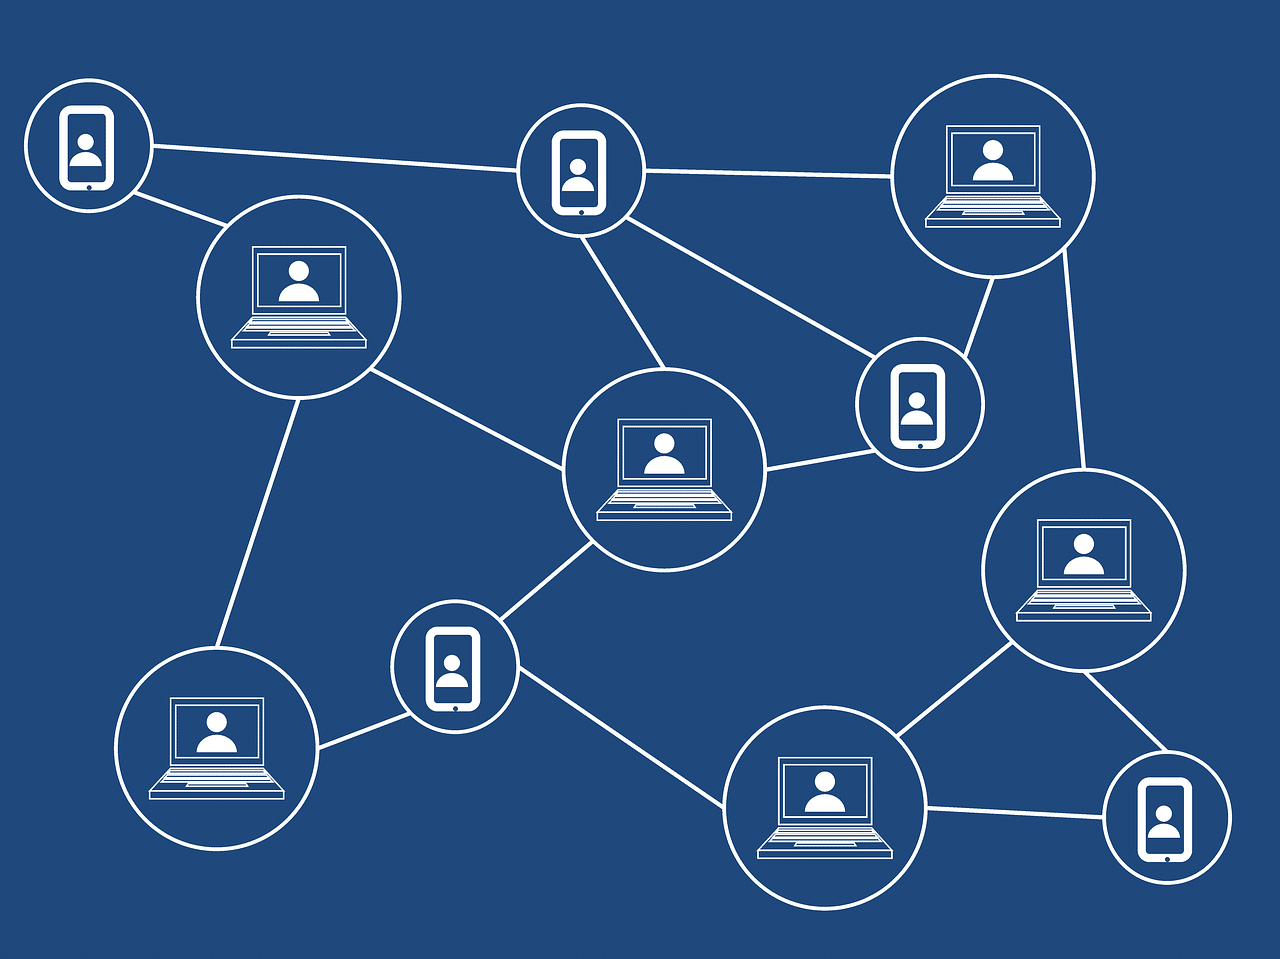 Blockchain, what is it and how does it work?